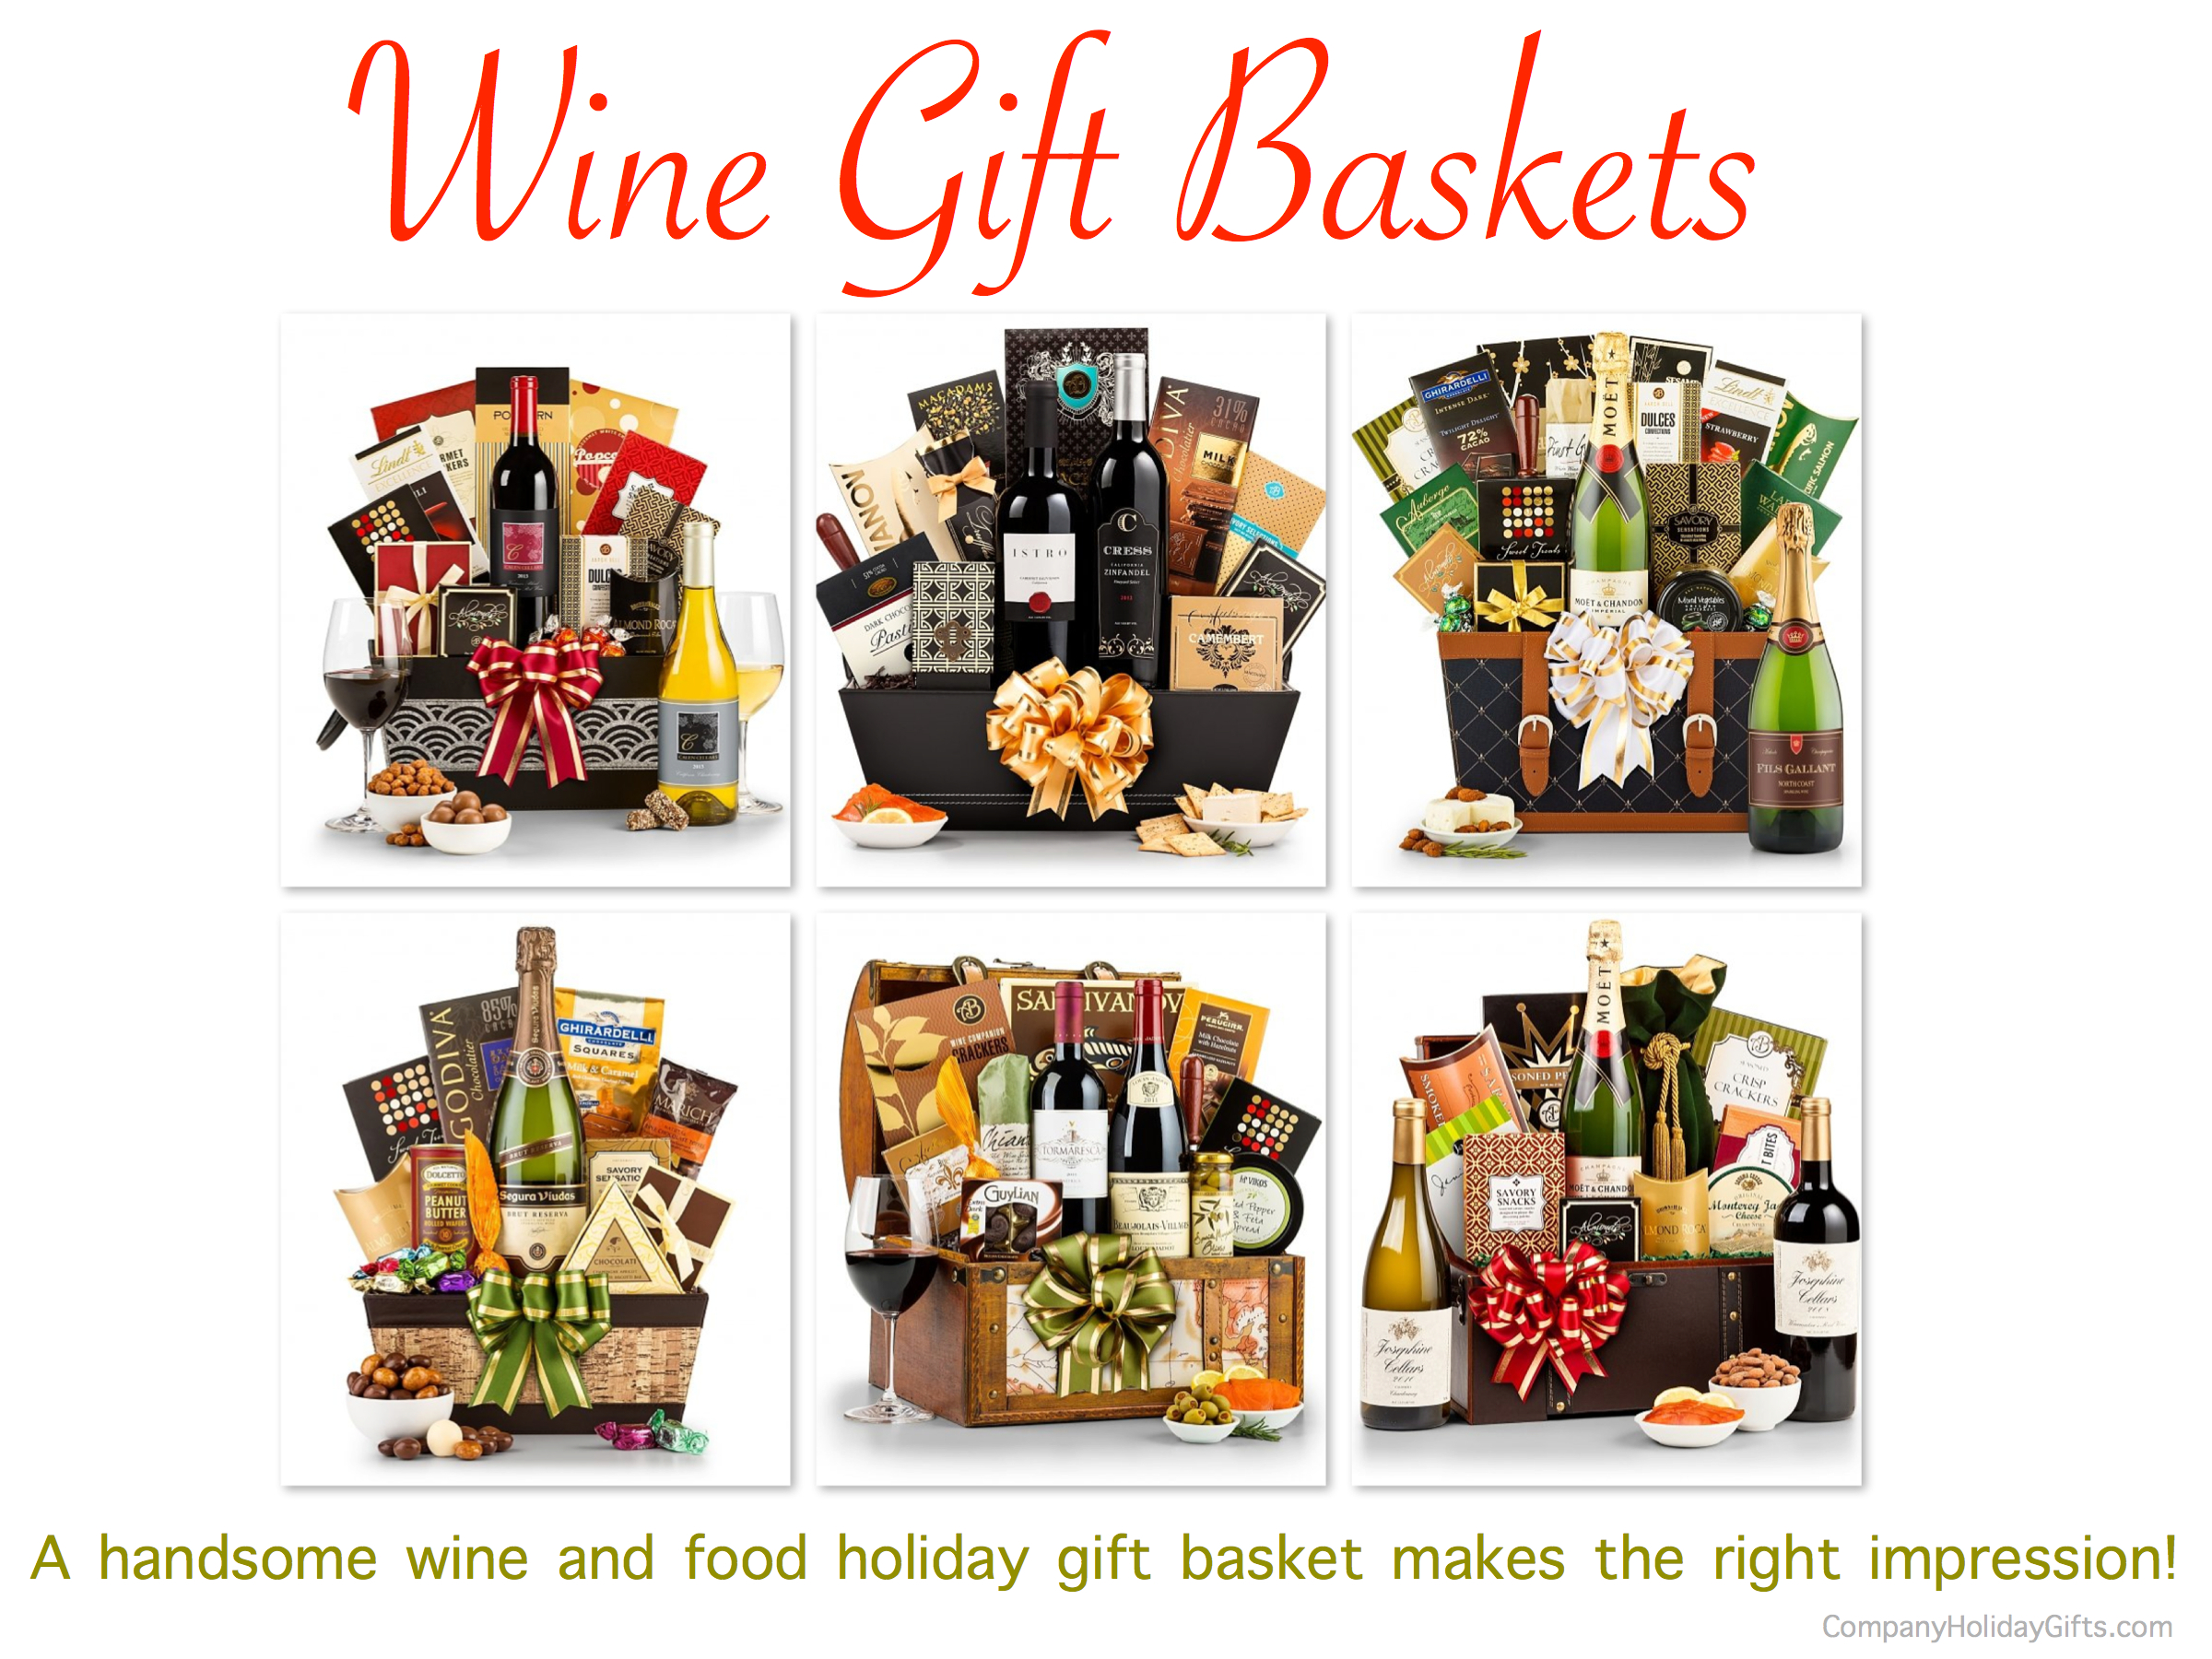 Wine & Food Holiday Gift Baskets, 20 Best Realtor Holiday Gift Ideas Under $100.00